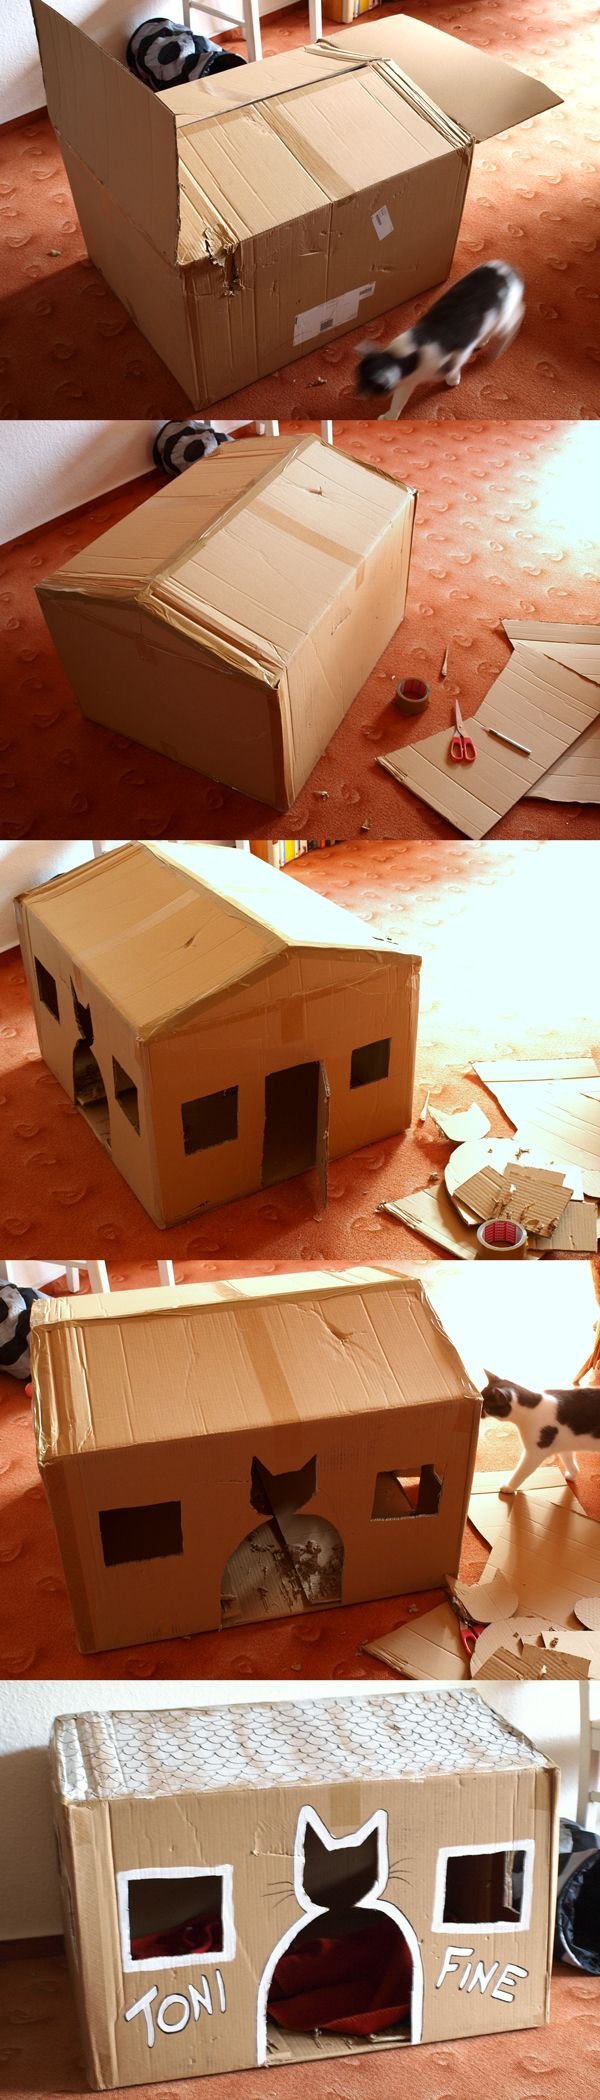 DIY cardboard cathouse-- only change I think I'd make is a sturdy, flat roof with a cat bed on top, so one of my girls can keep an eye on the other one AND me at the same time! LOL